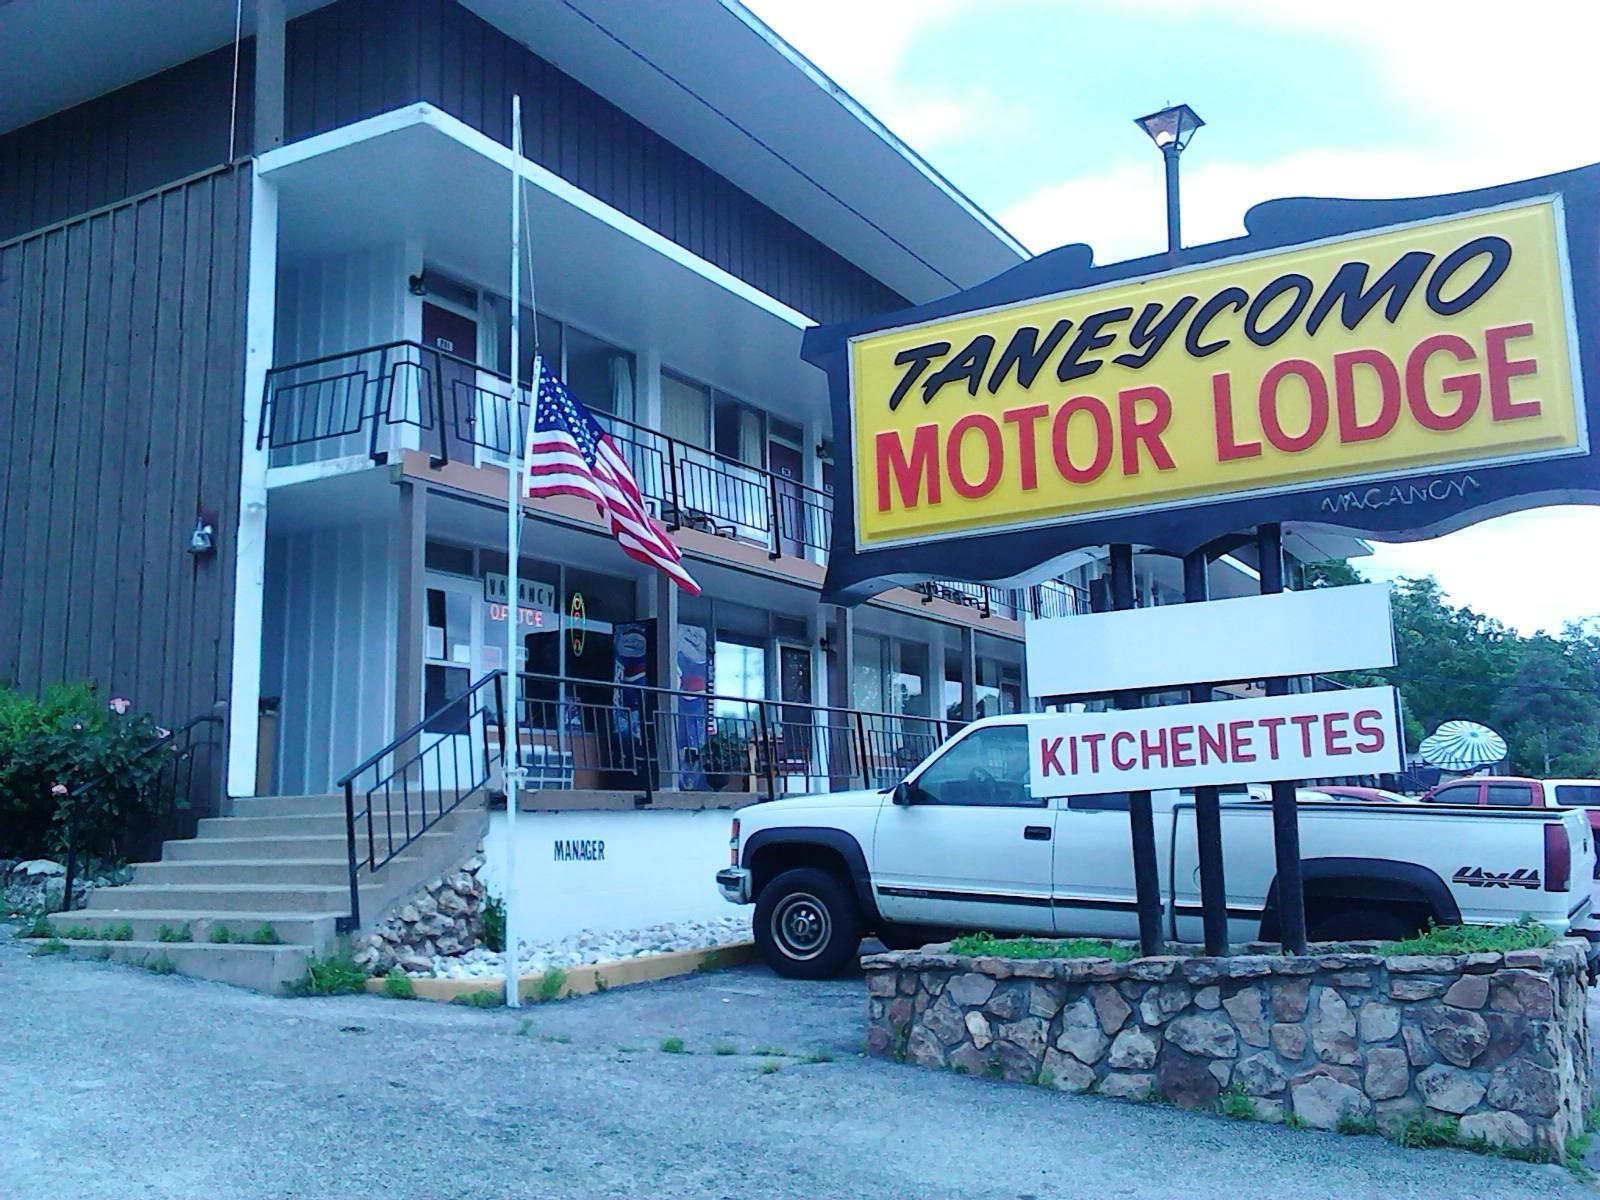 Taneycomo Motor Lodge